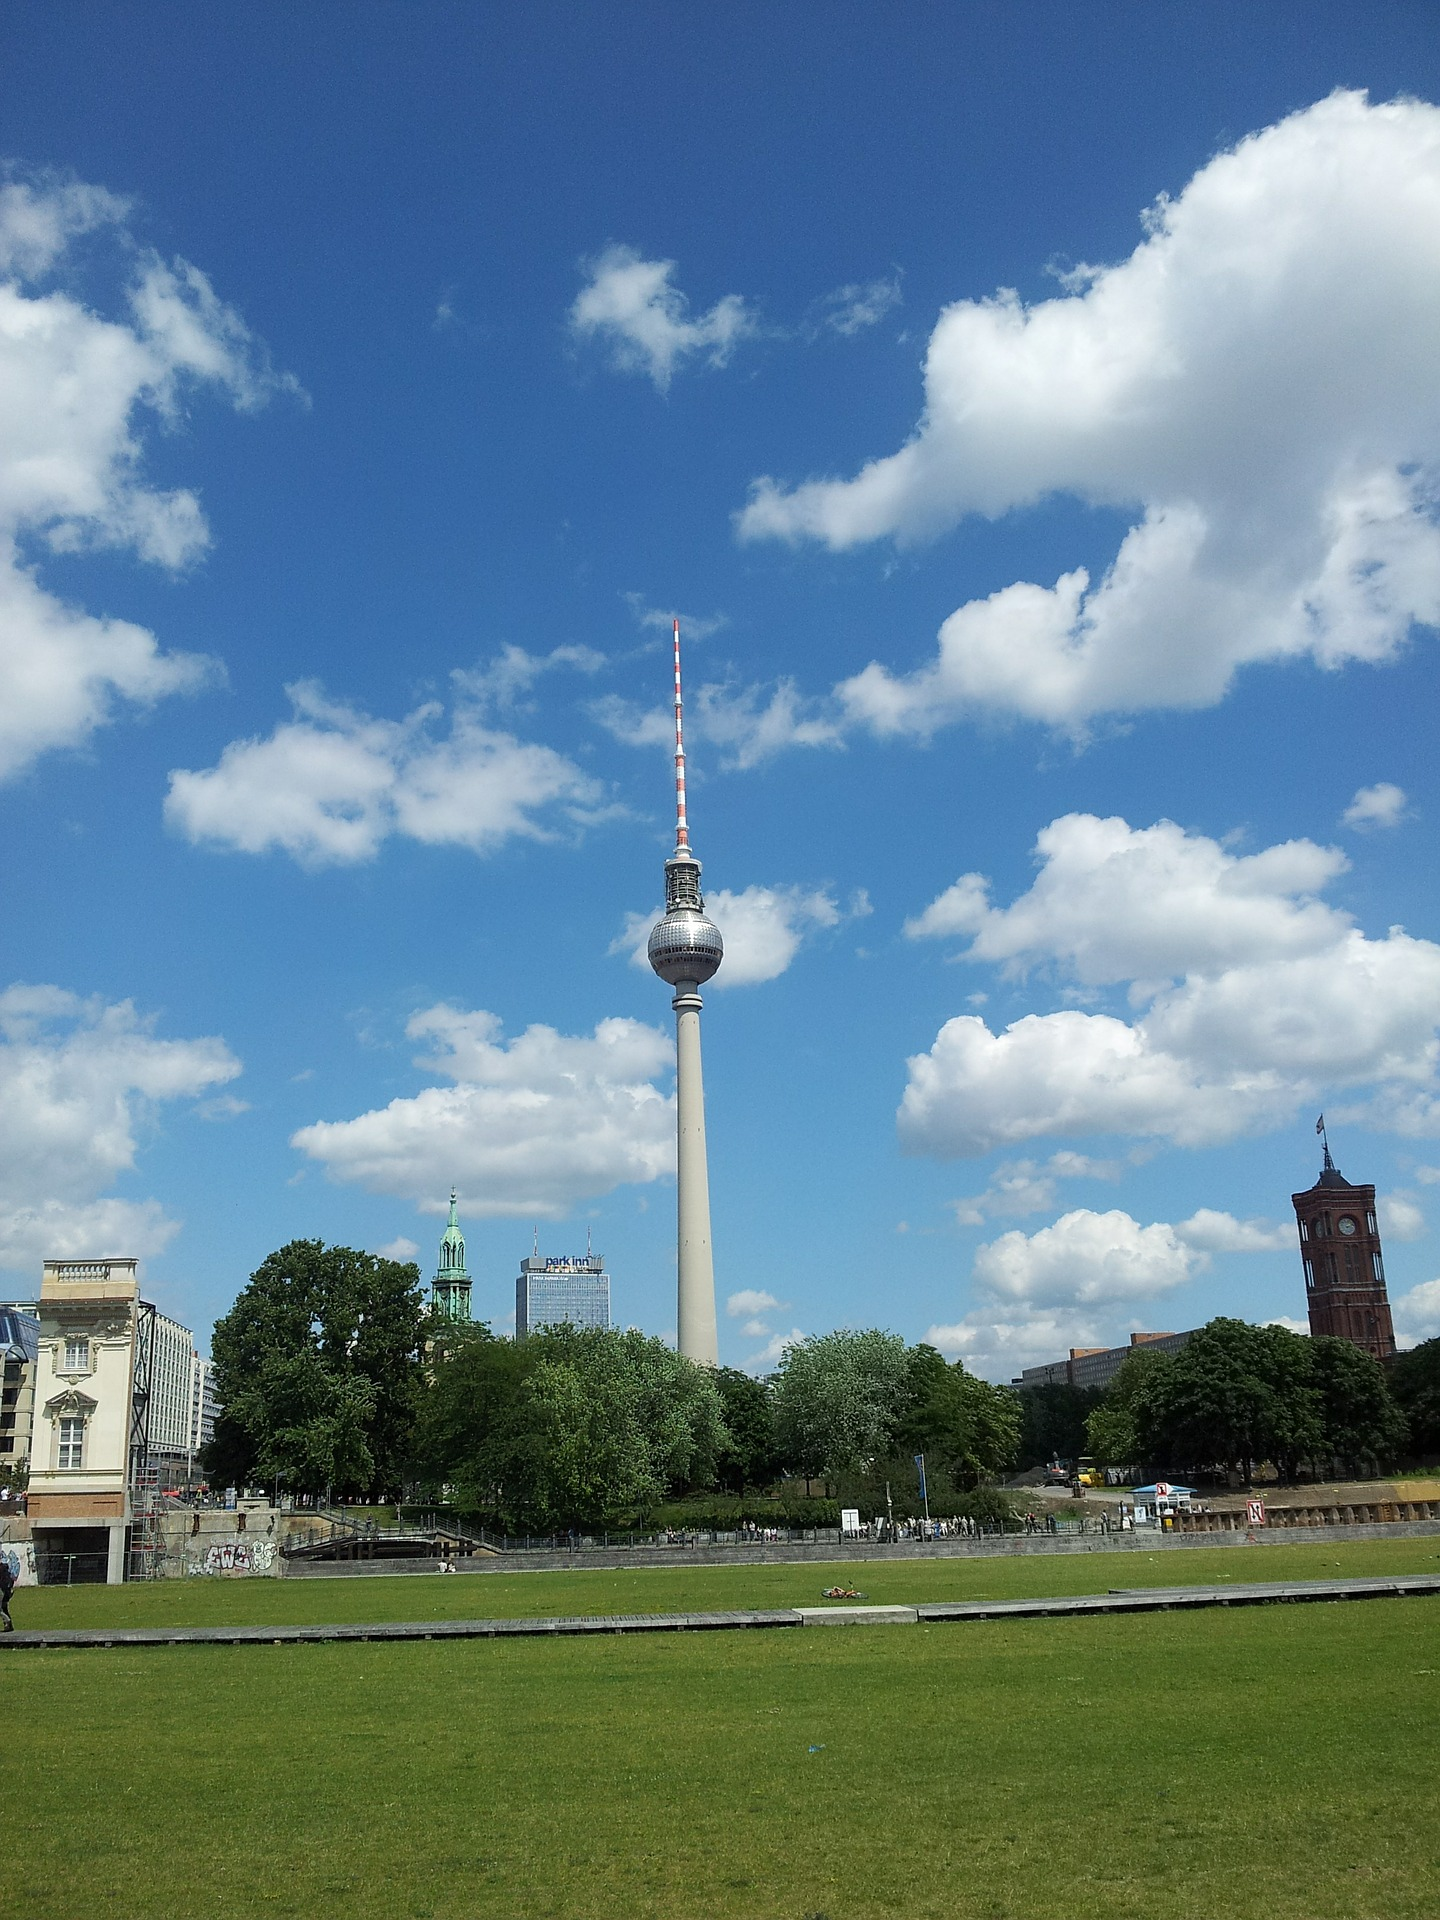 Fernsehturm tower, Berlin, Germany